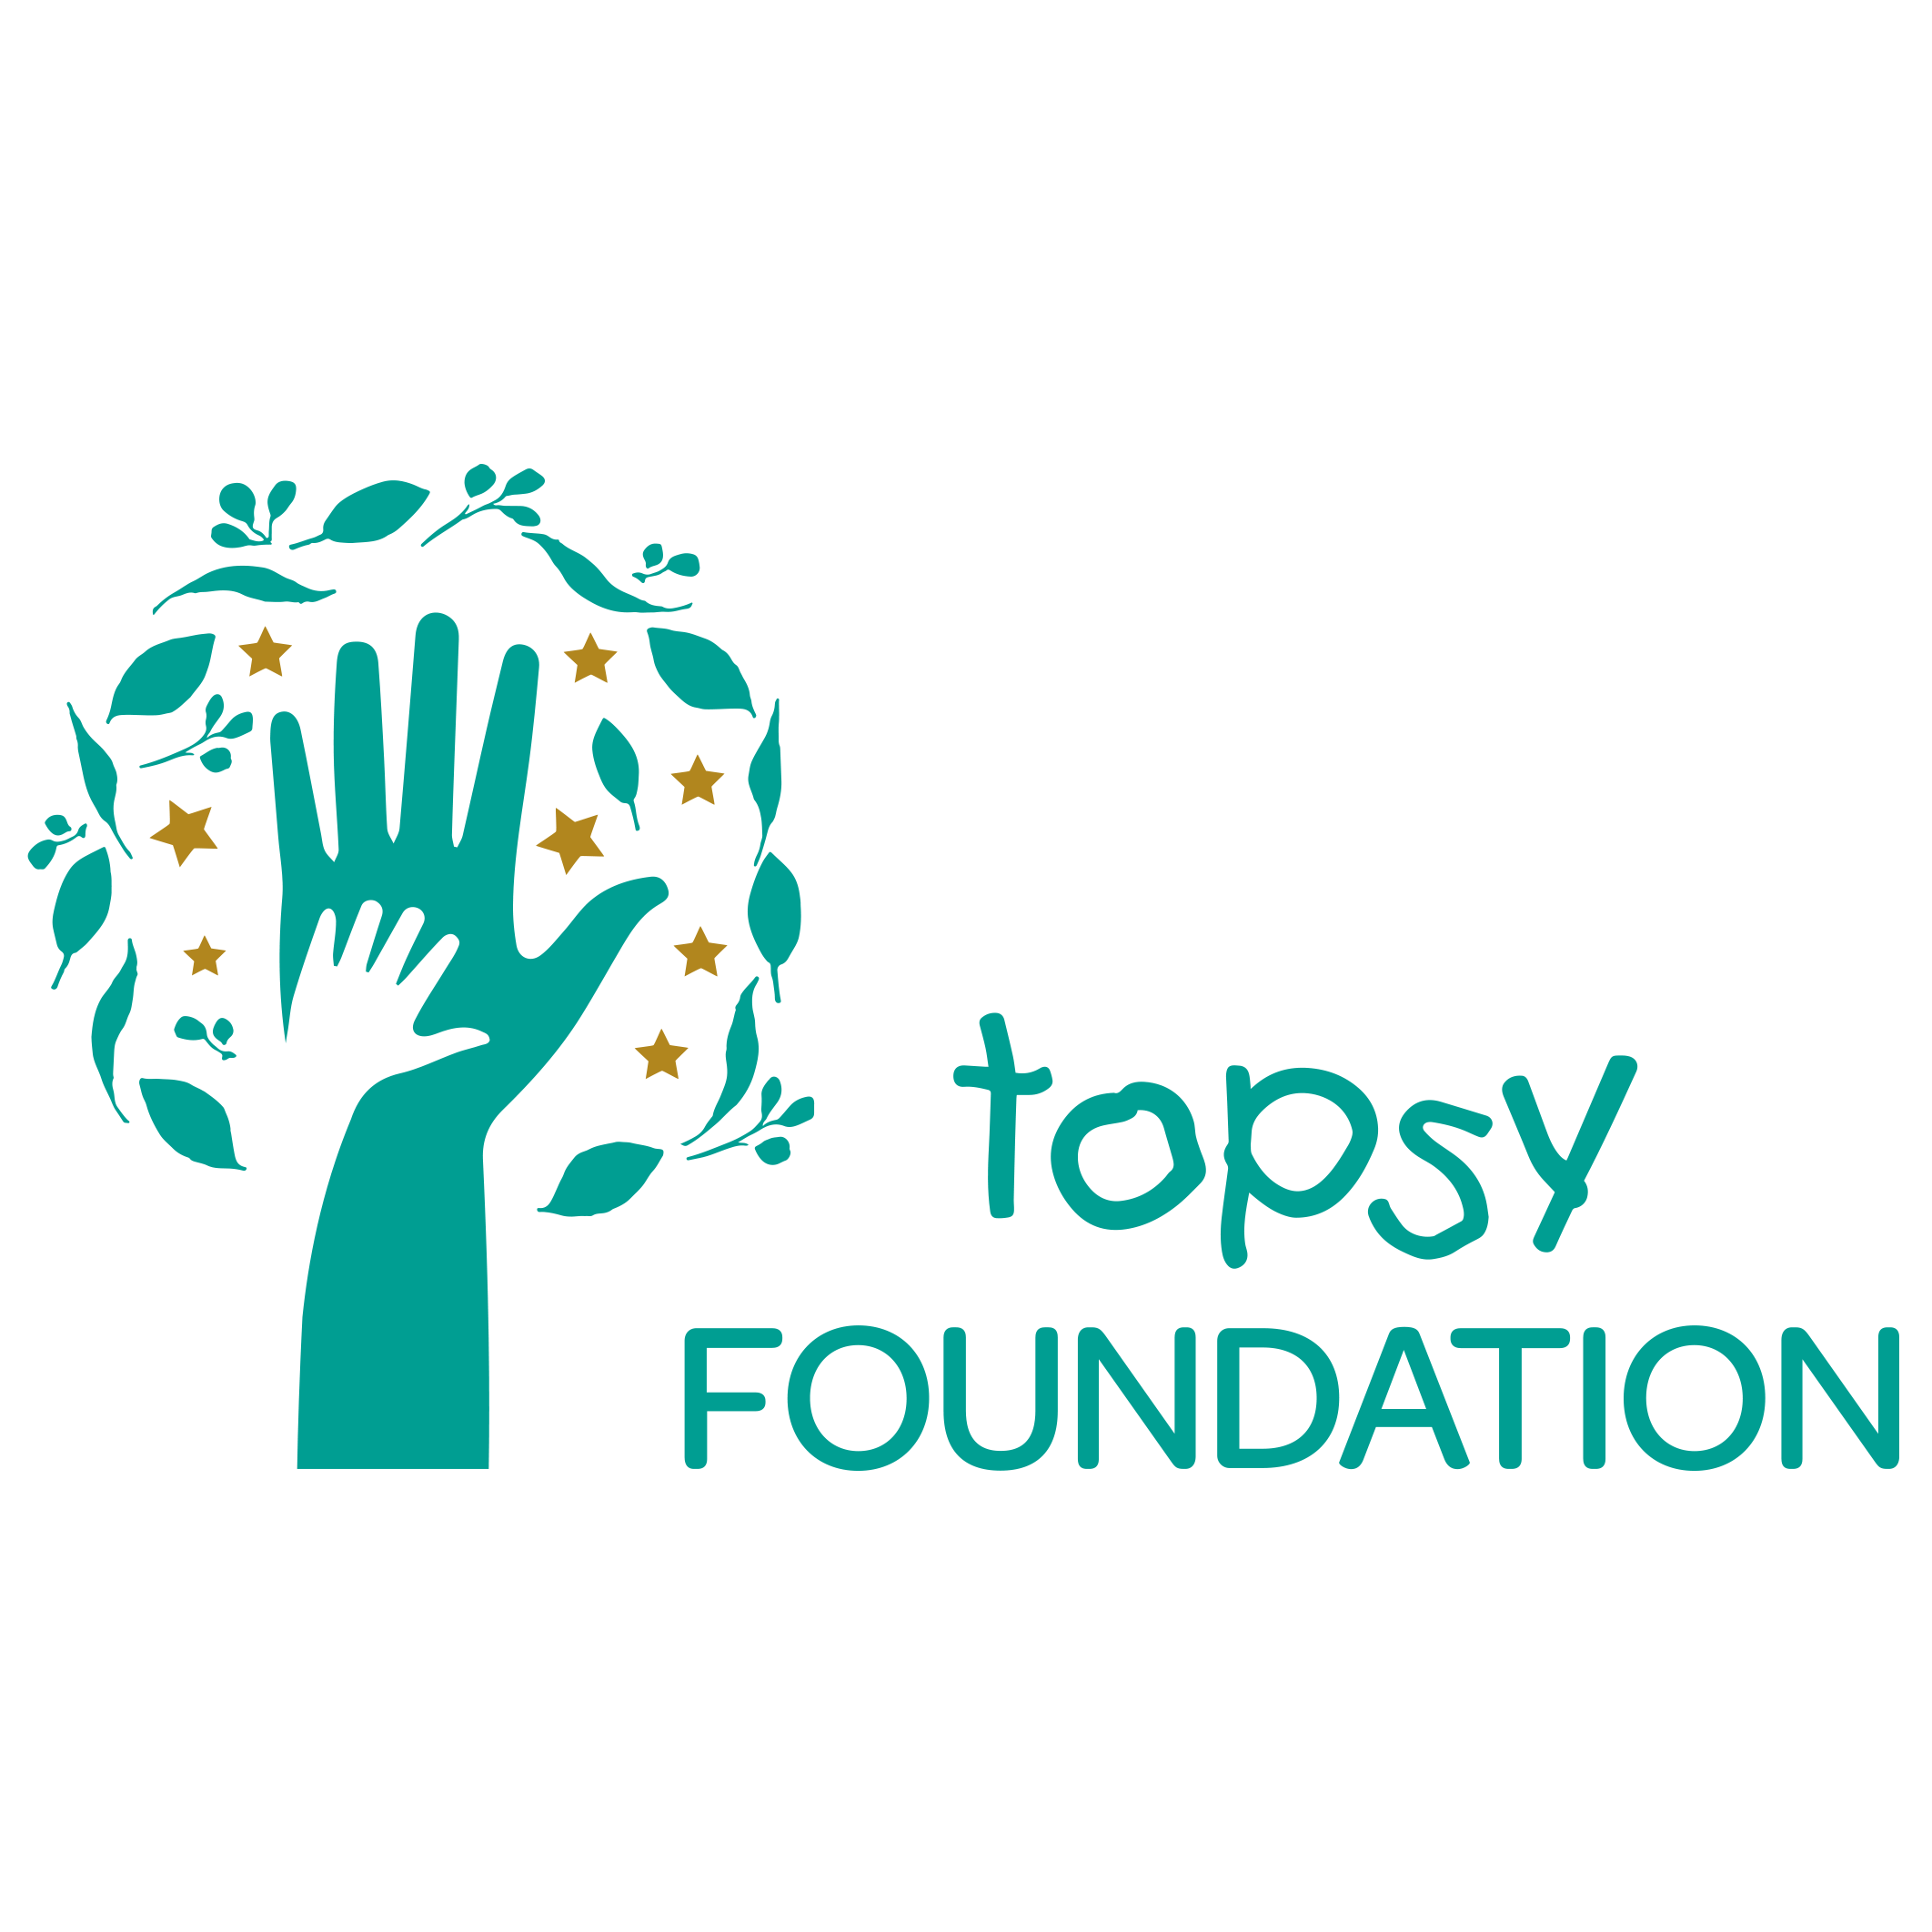 The Topsy Foundation NPC